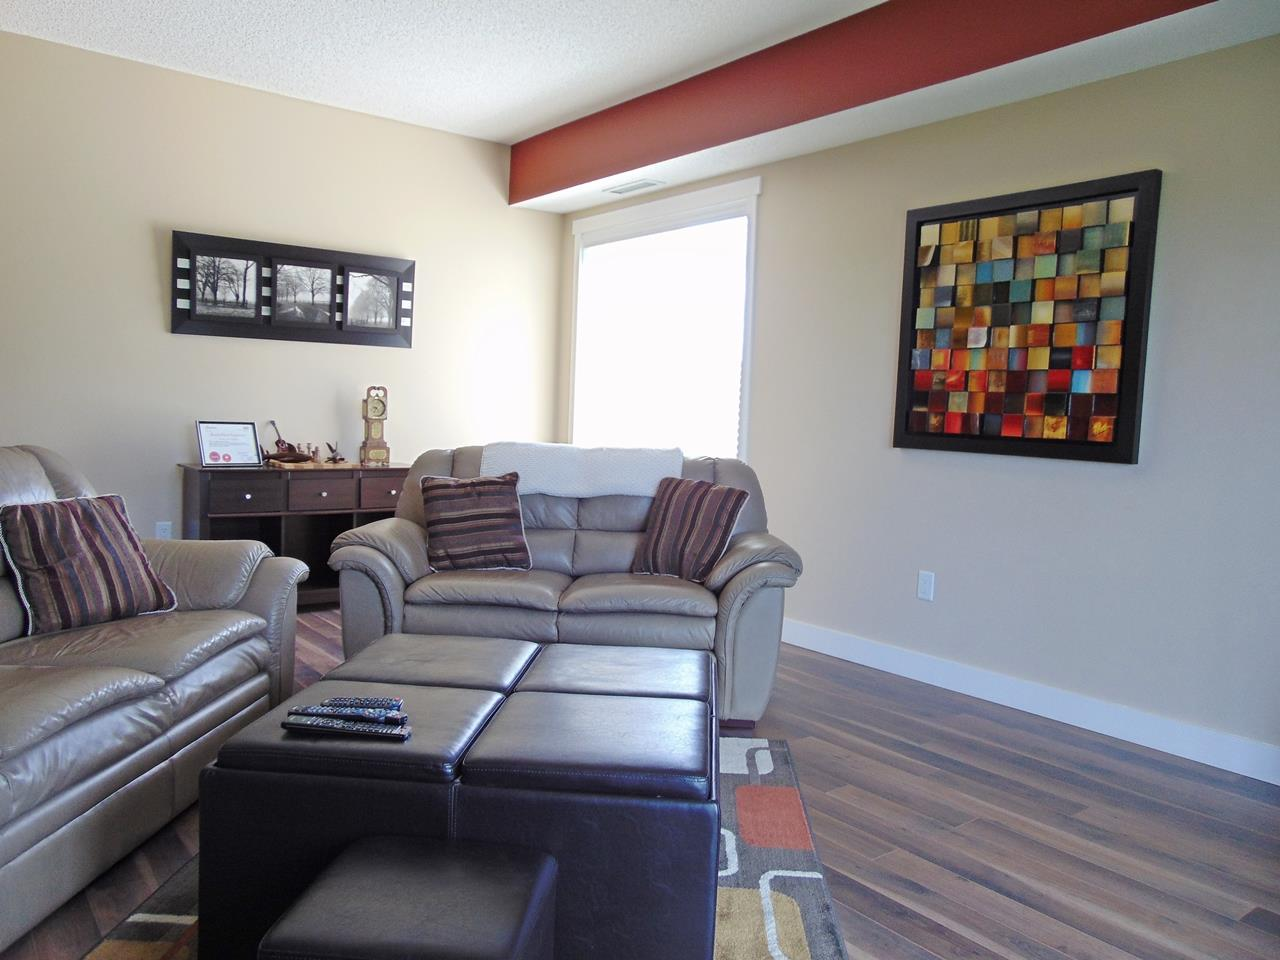 Photo 13: 203 4922 52 Street: Gibbons Condo for sale : MLS® # E4071334